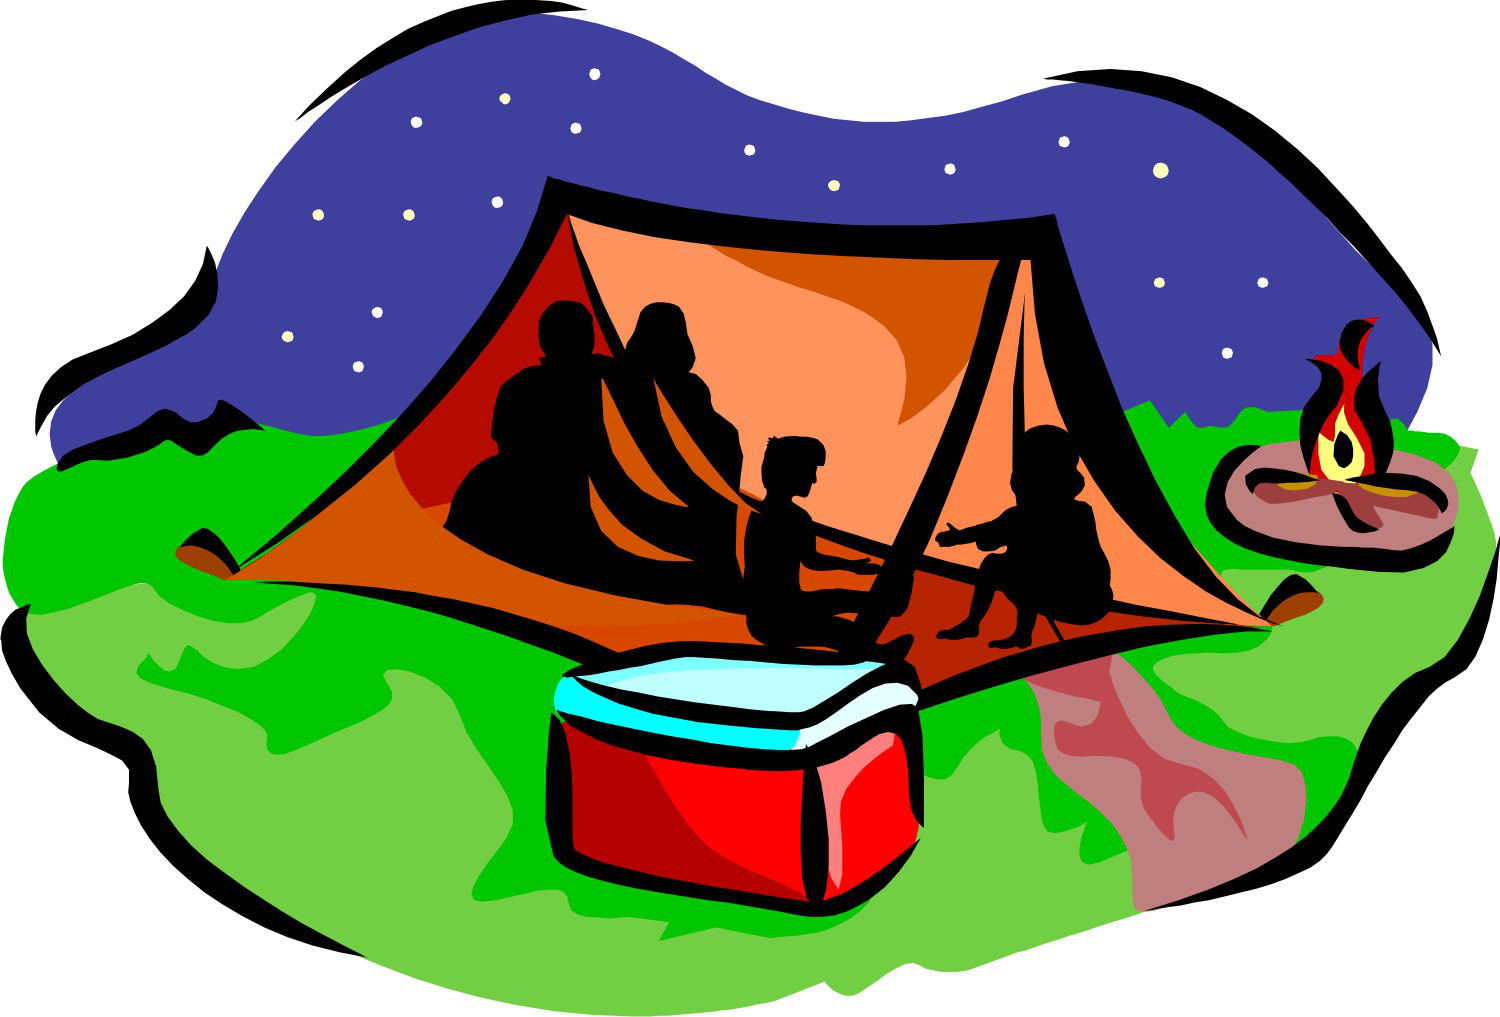 Tent clipart panda Red Cartoon And And Tent